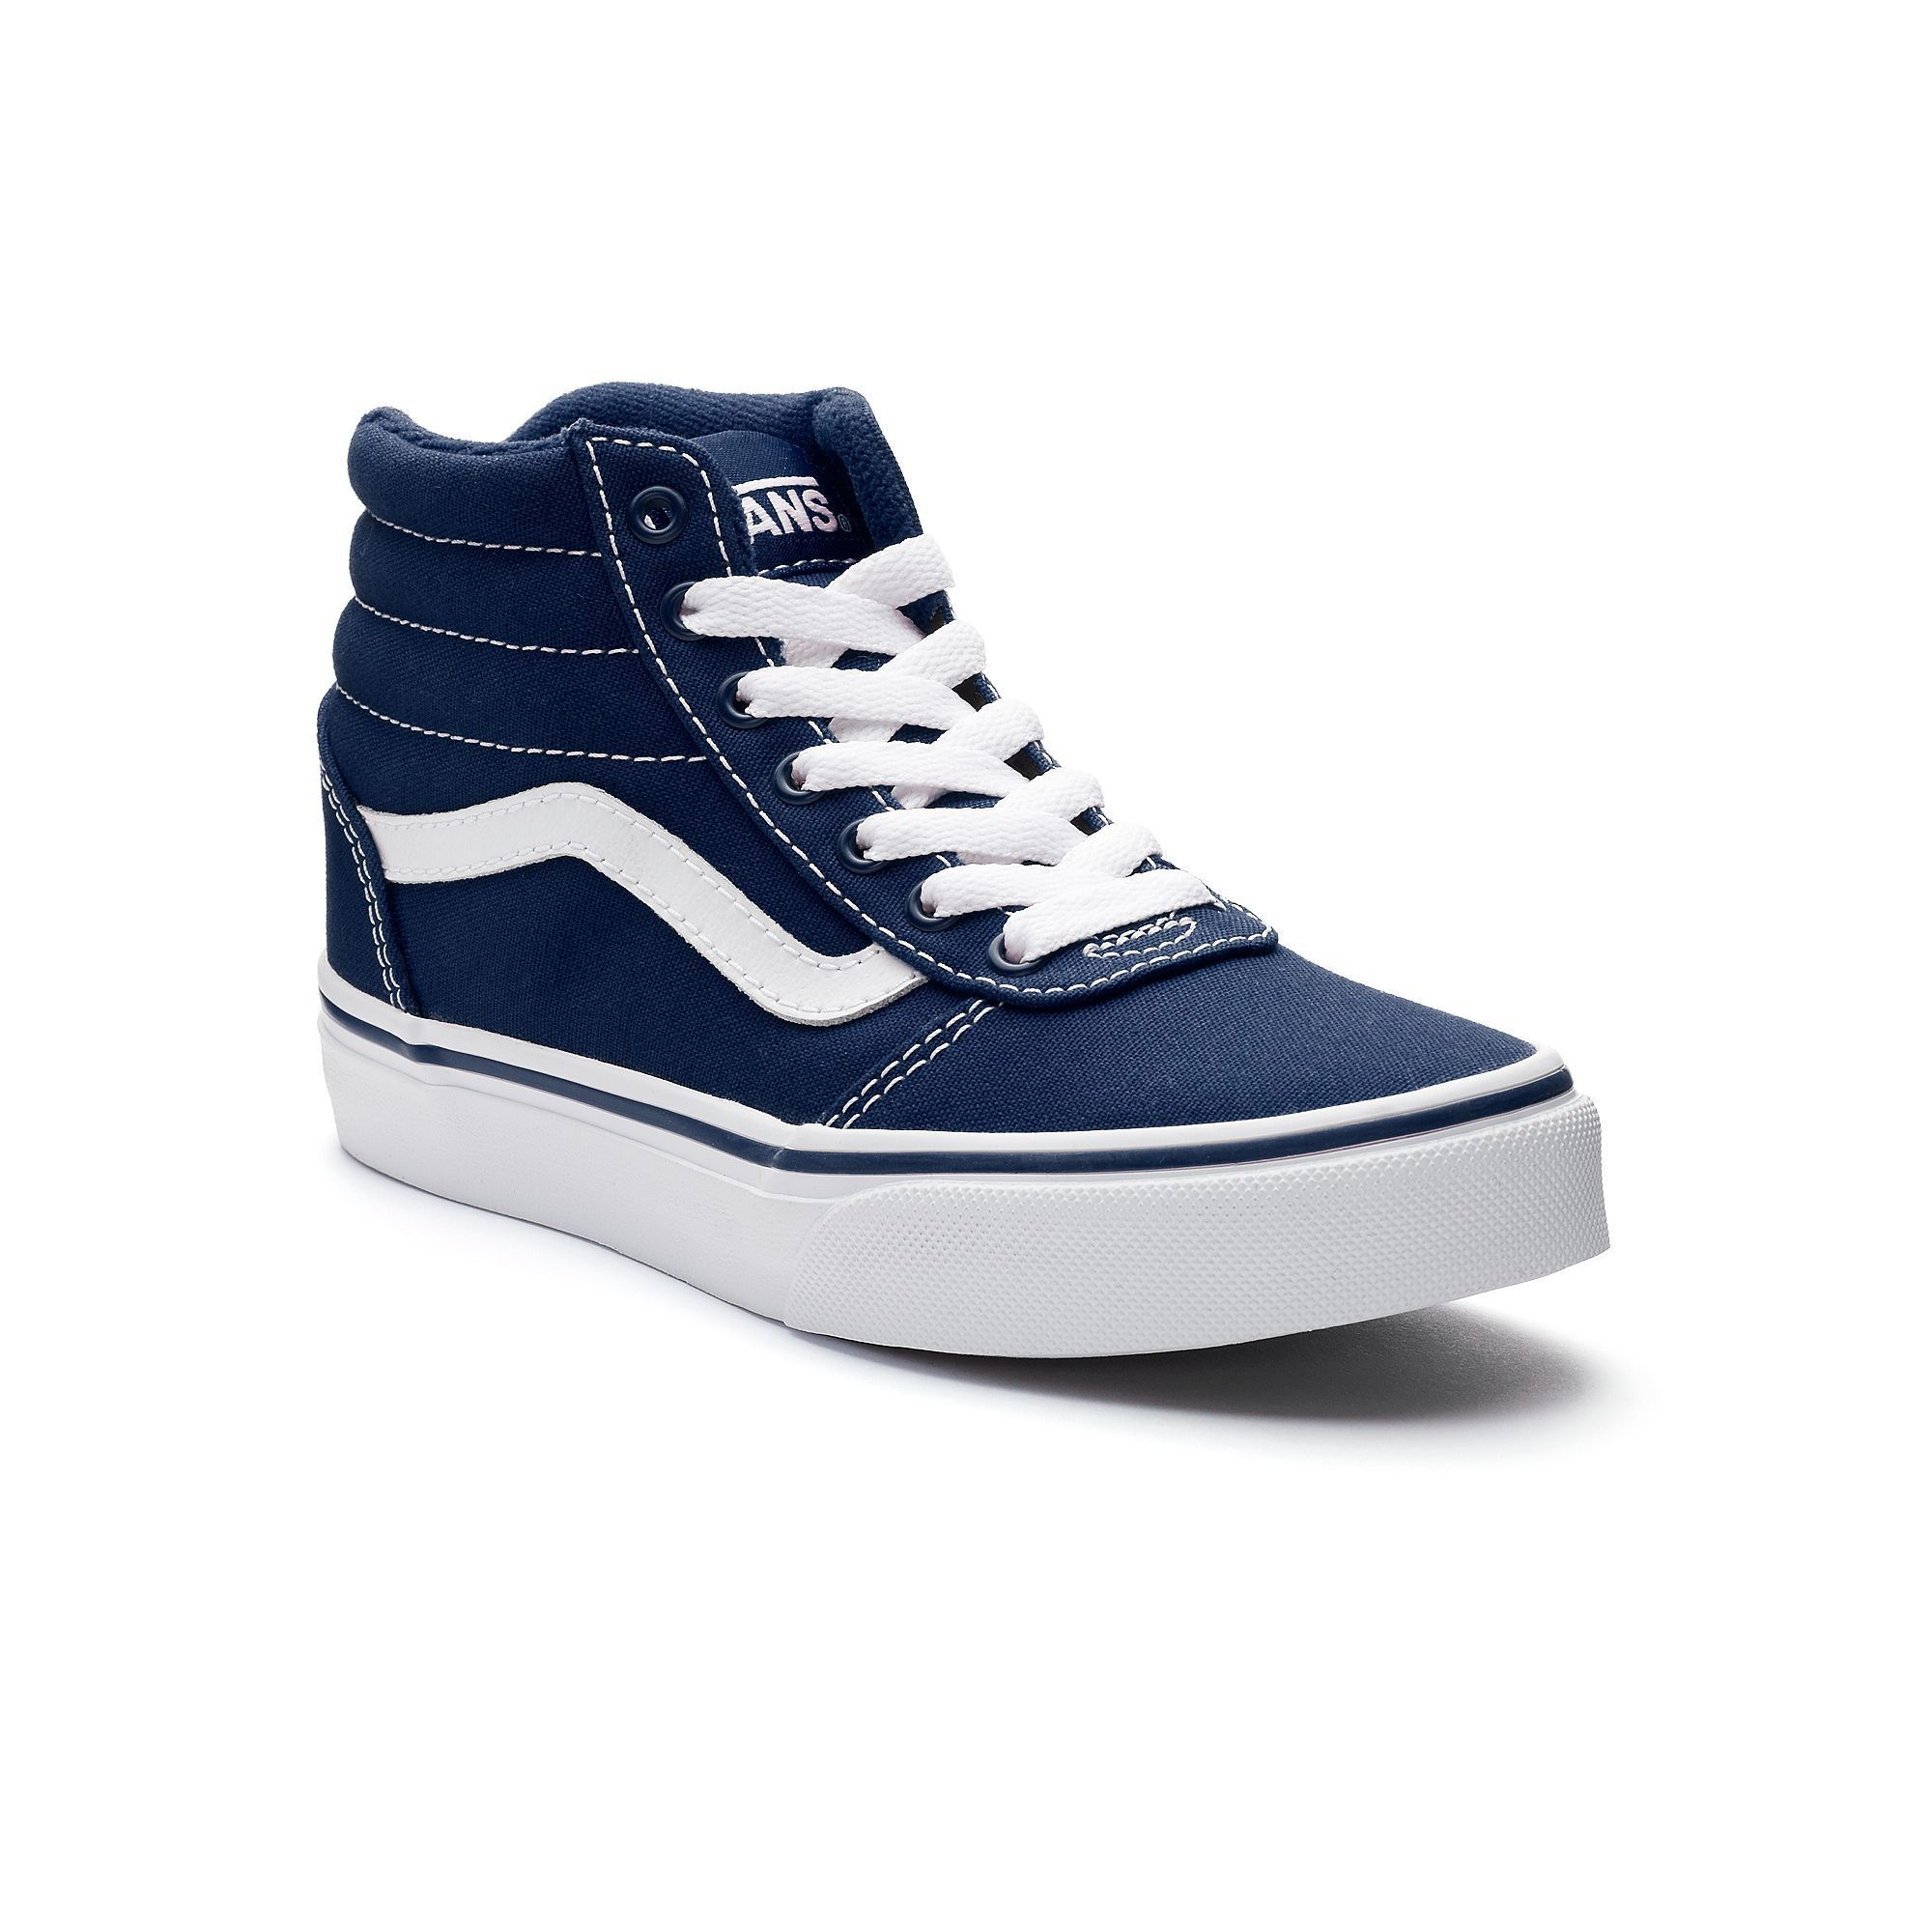 16a563a40feb48 Vans Ward Hi Kids  High-Top Sneakers